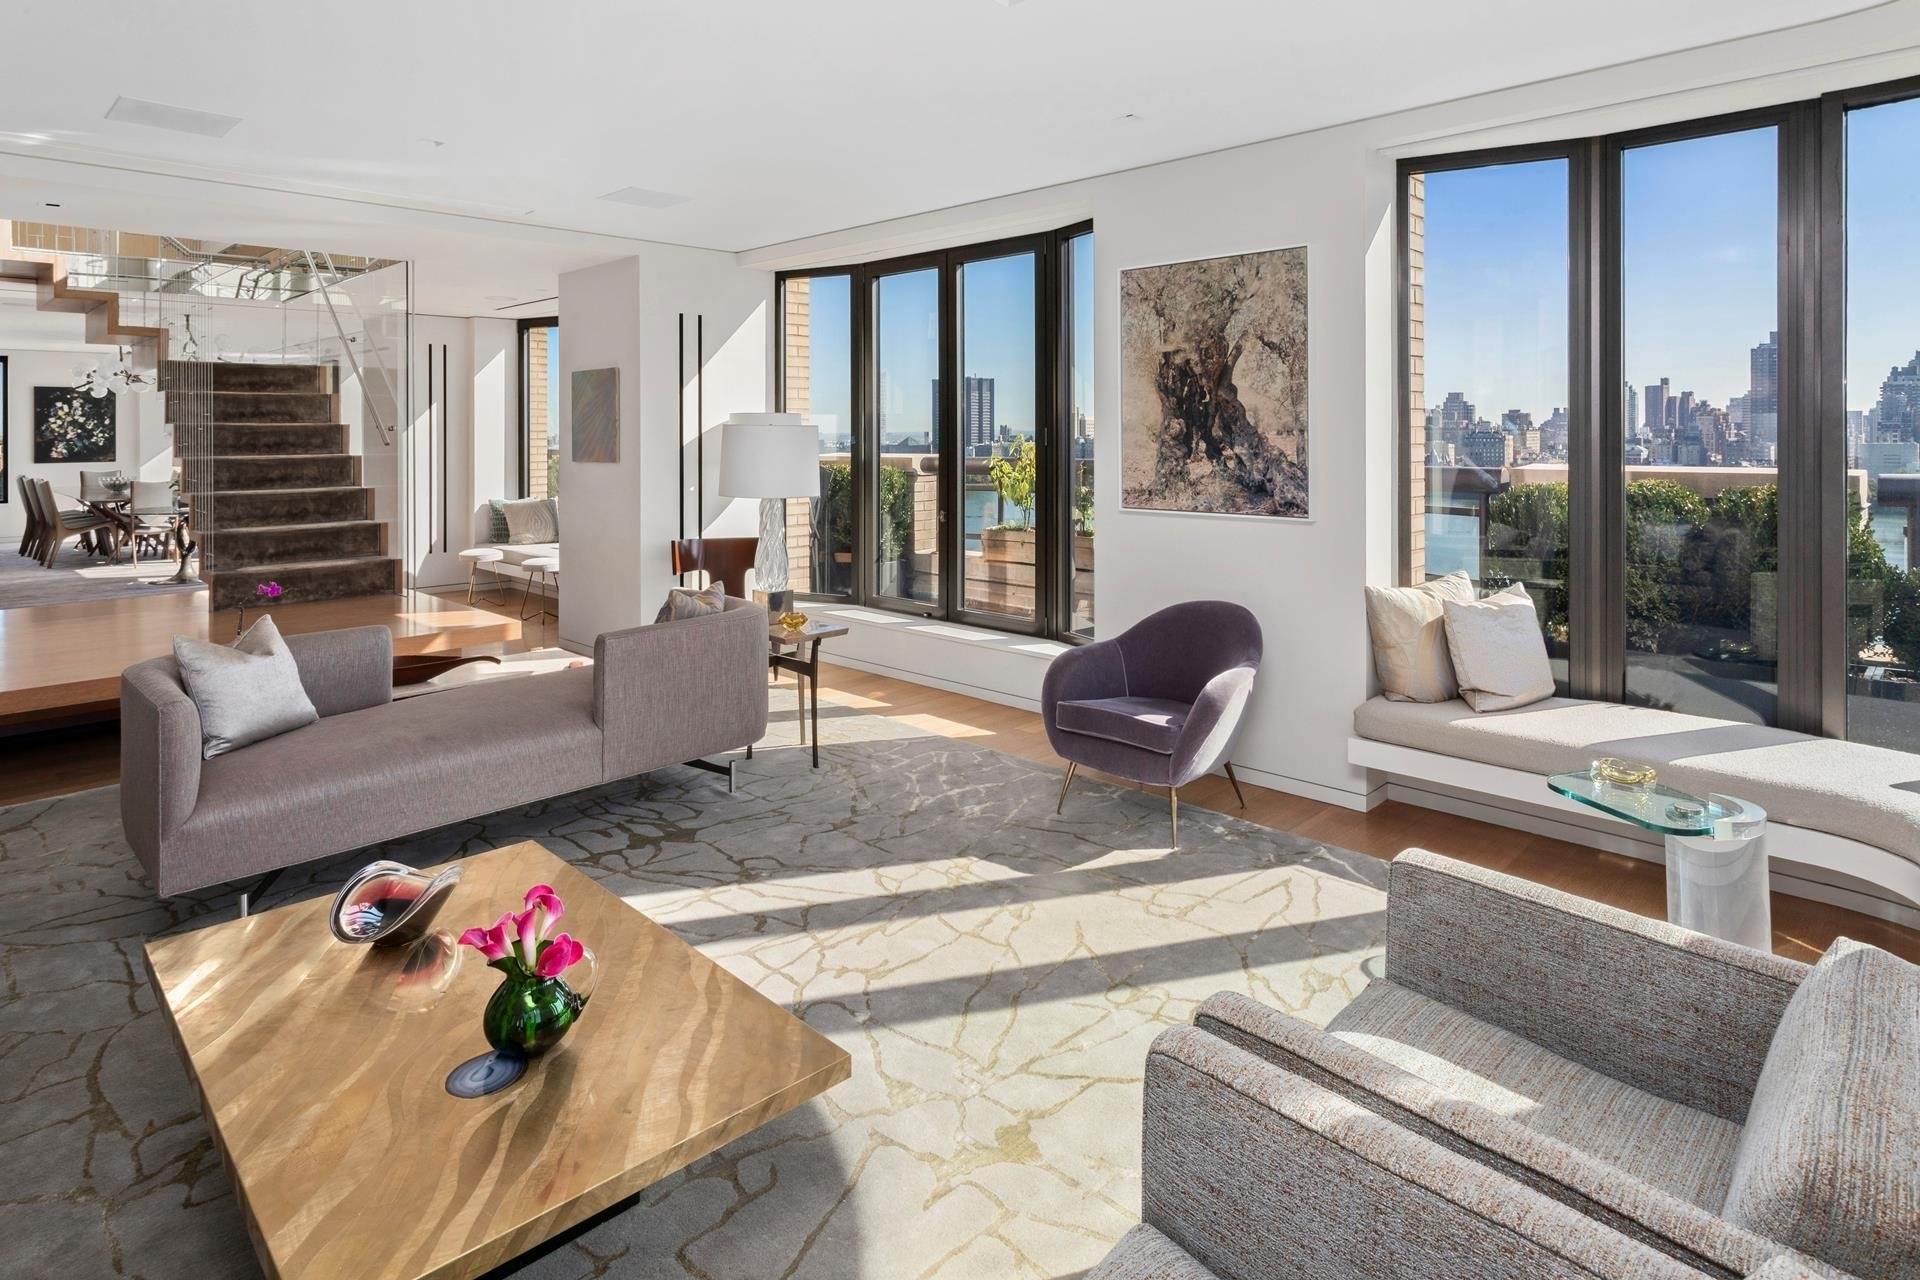 4. Condominiums for Sale at 279 CENTRAL PARK W, PHBA Upper West Side, New York, NY 10024